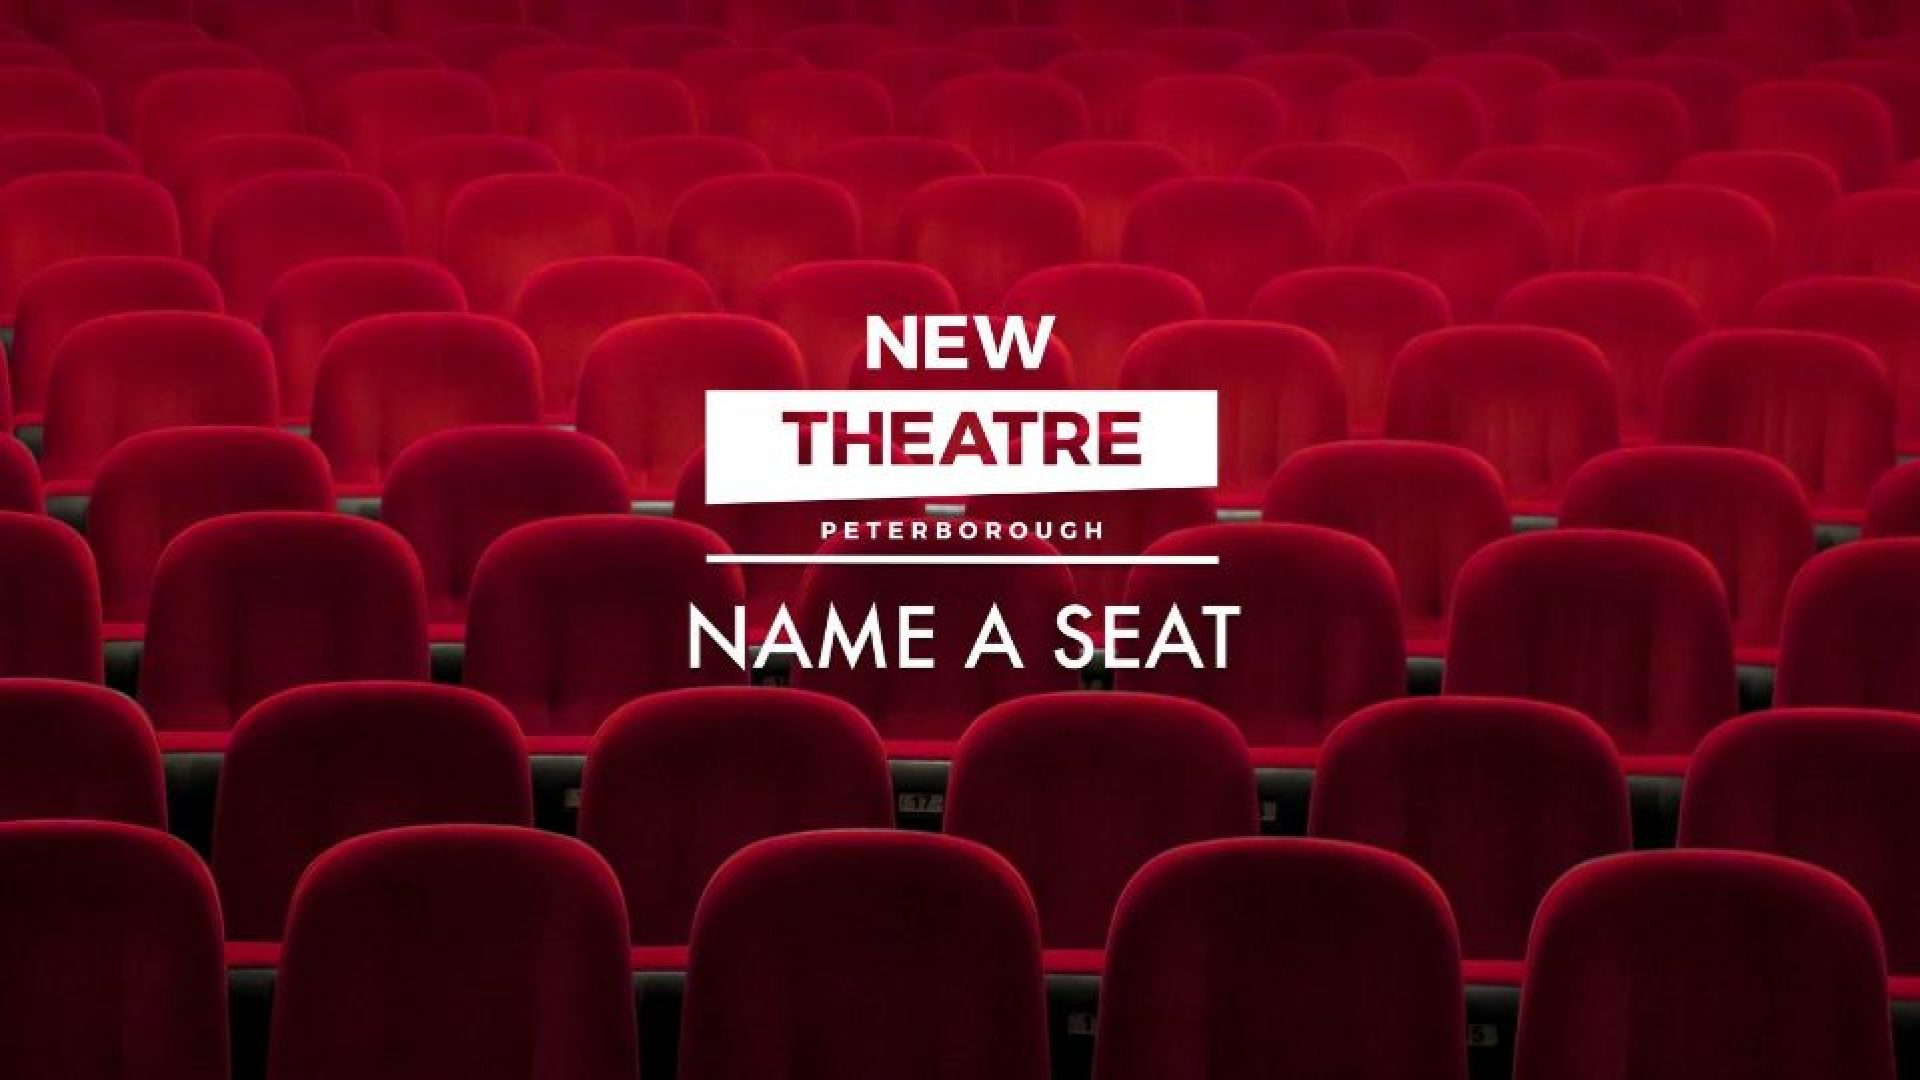 Live Forever at New Theatre